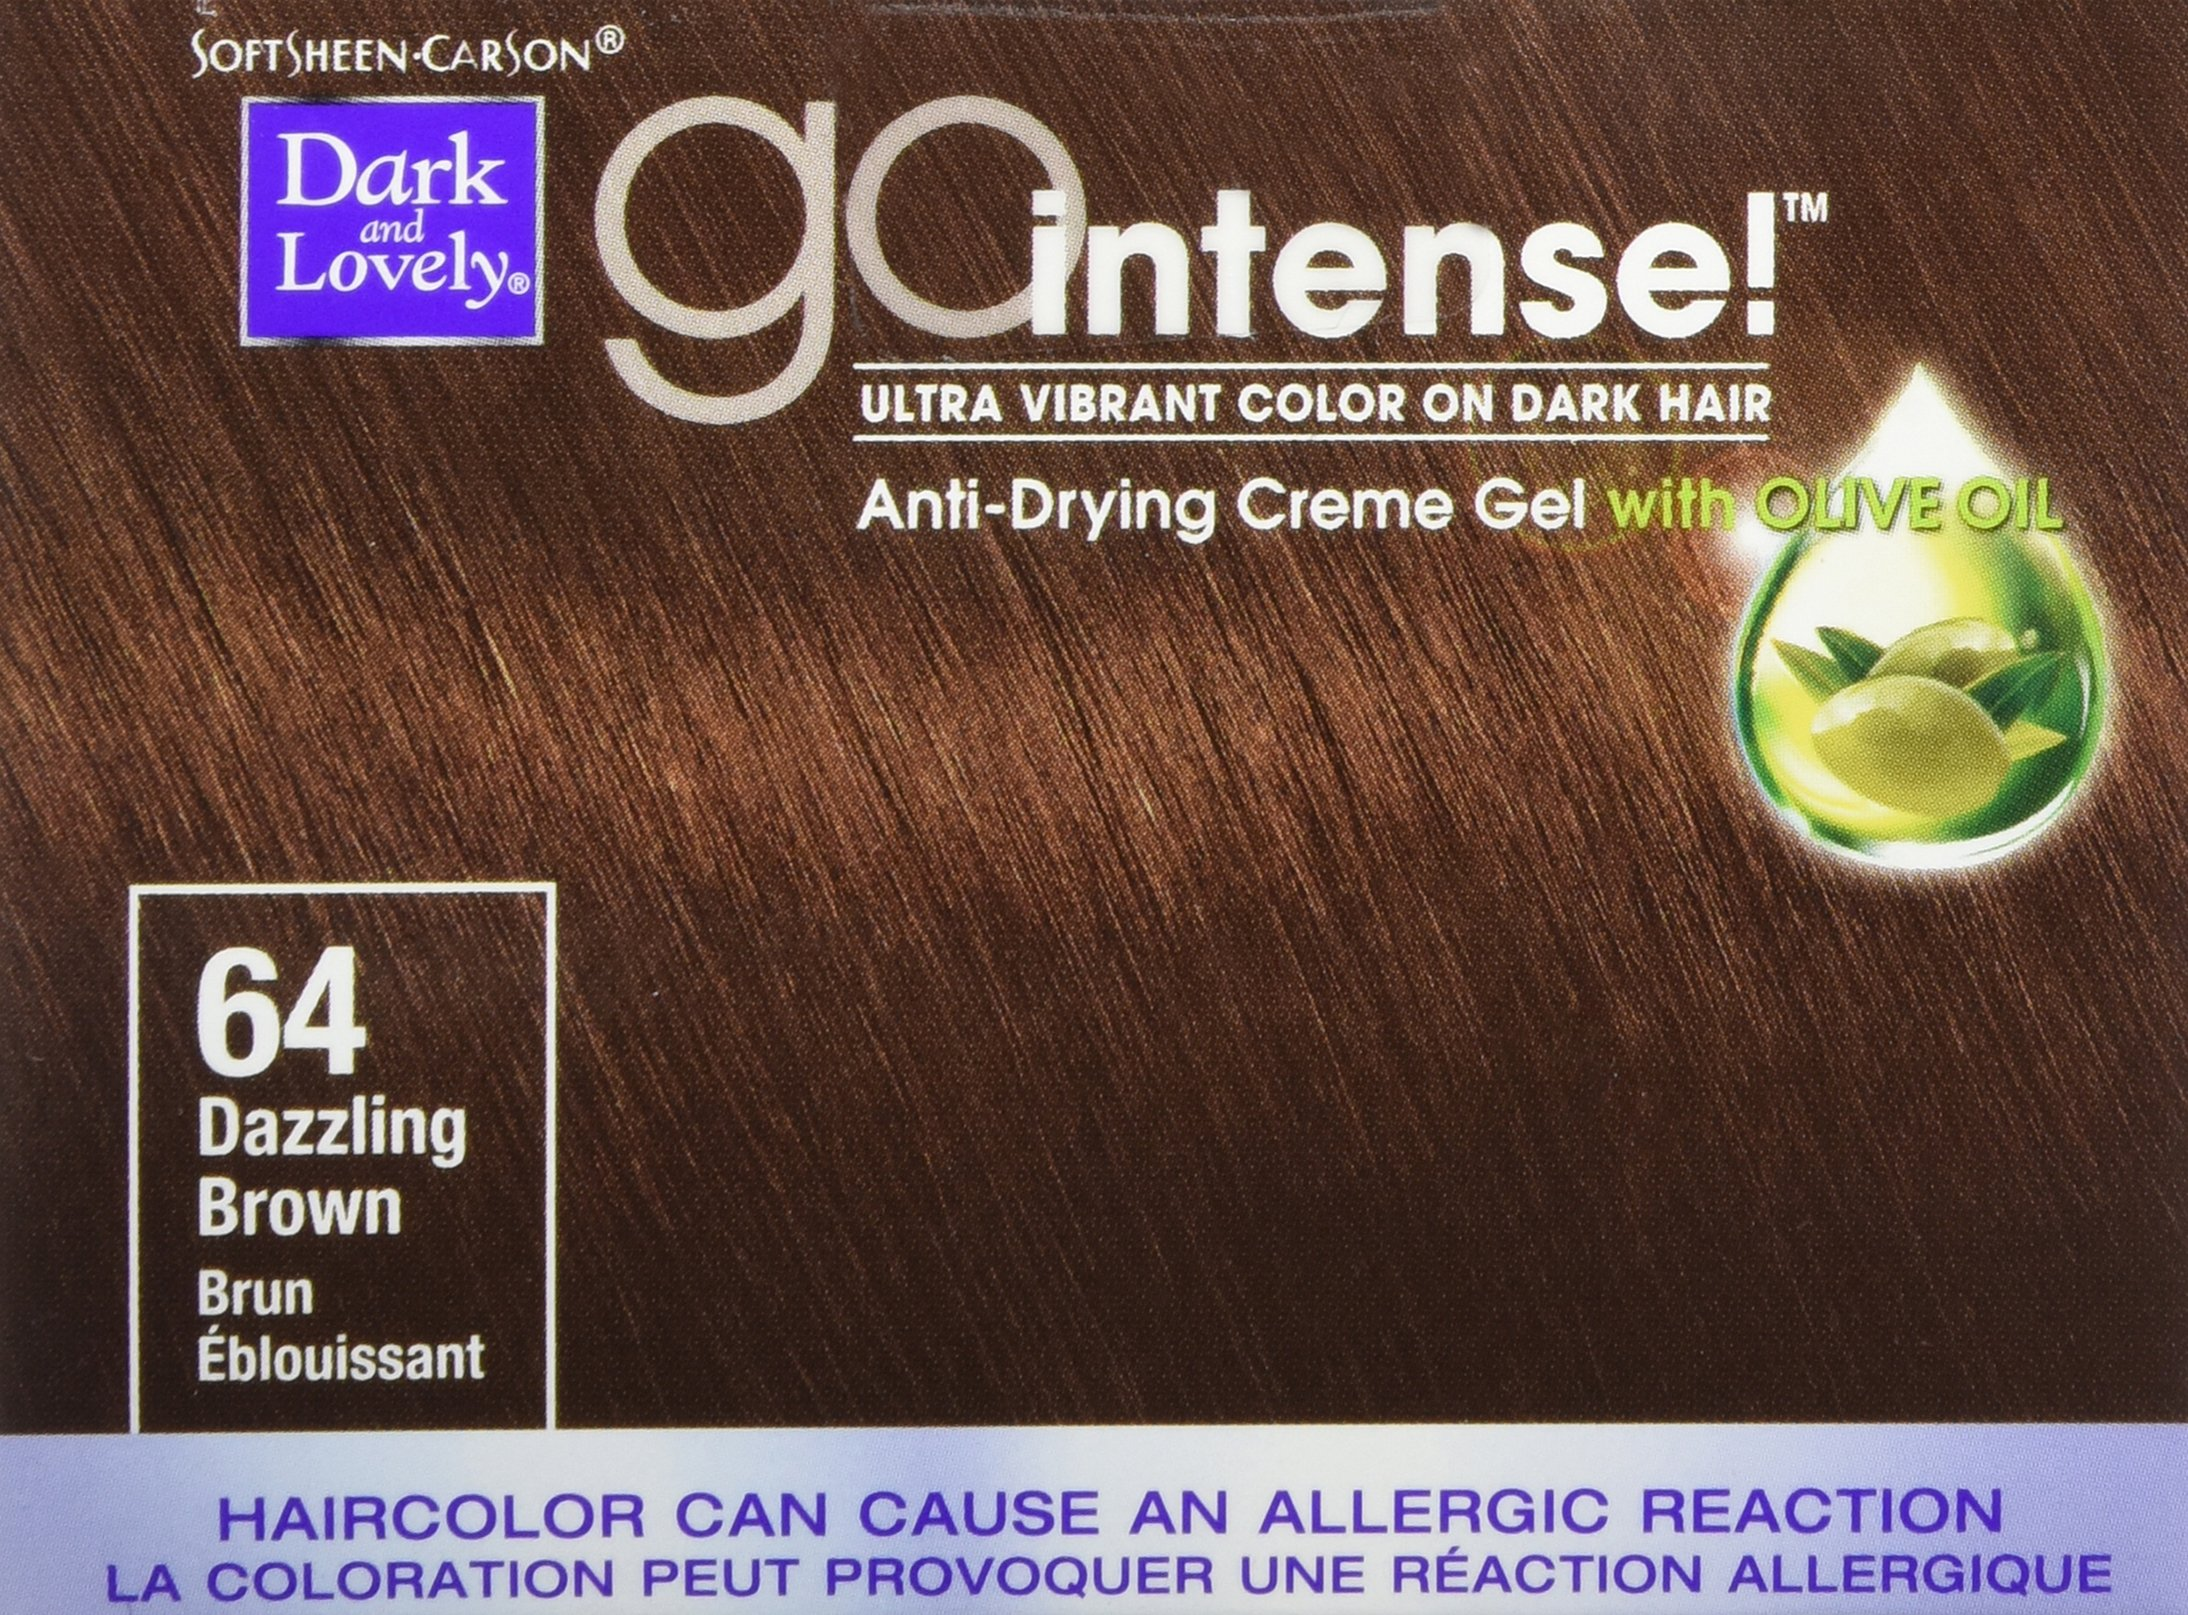 Softsheen Carson Dark and Lovely Go Intense Hair Color, Dazzling Brown